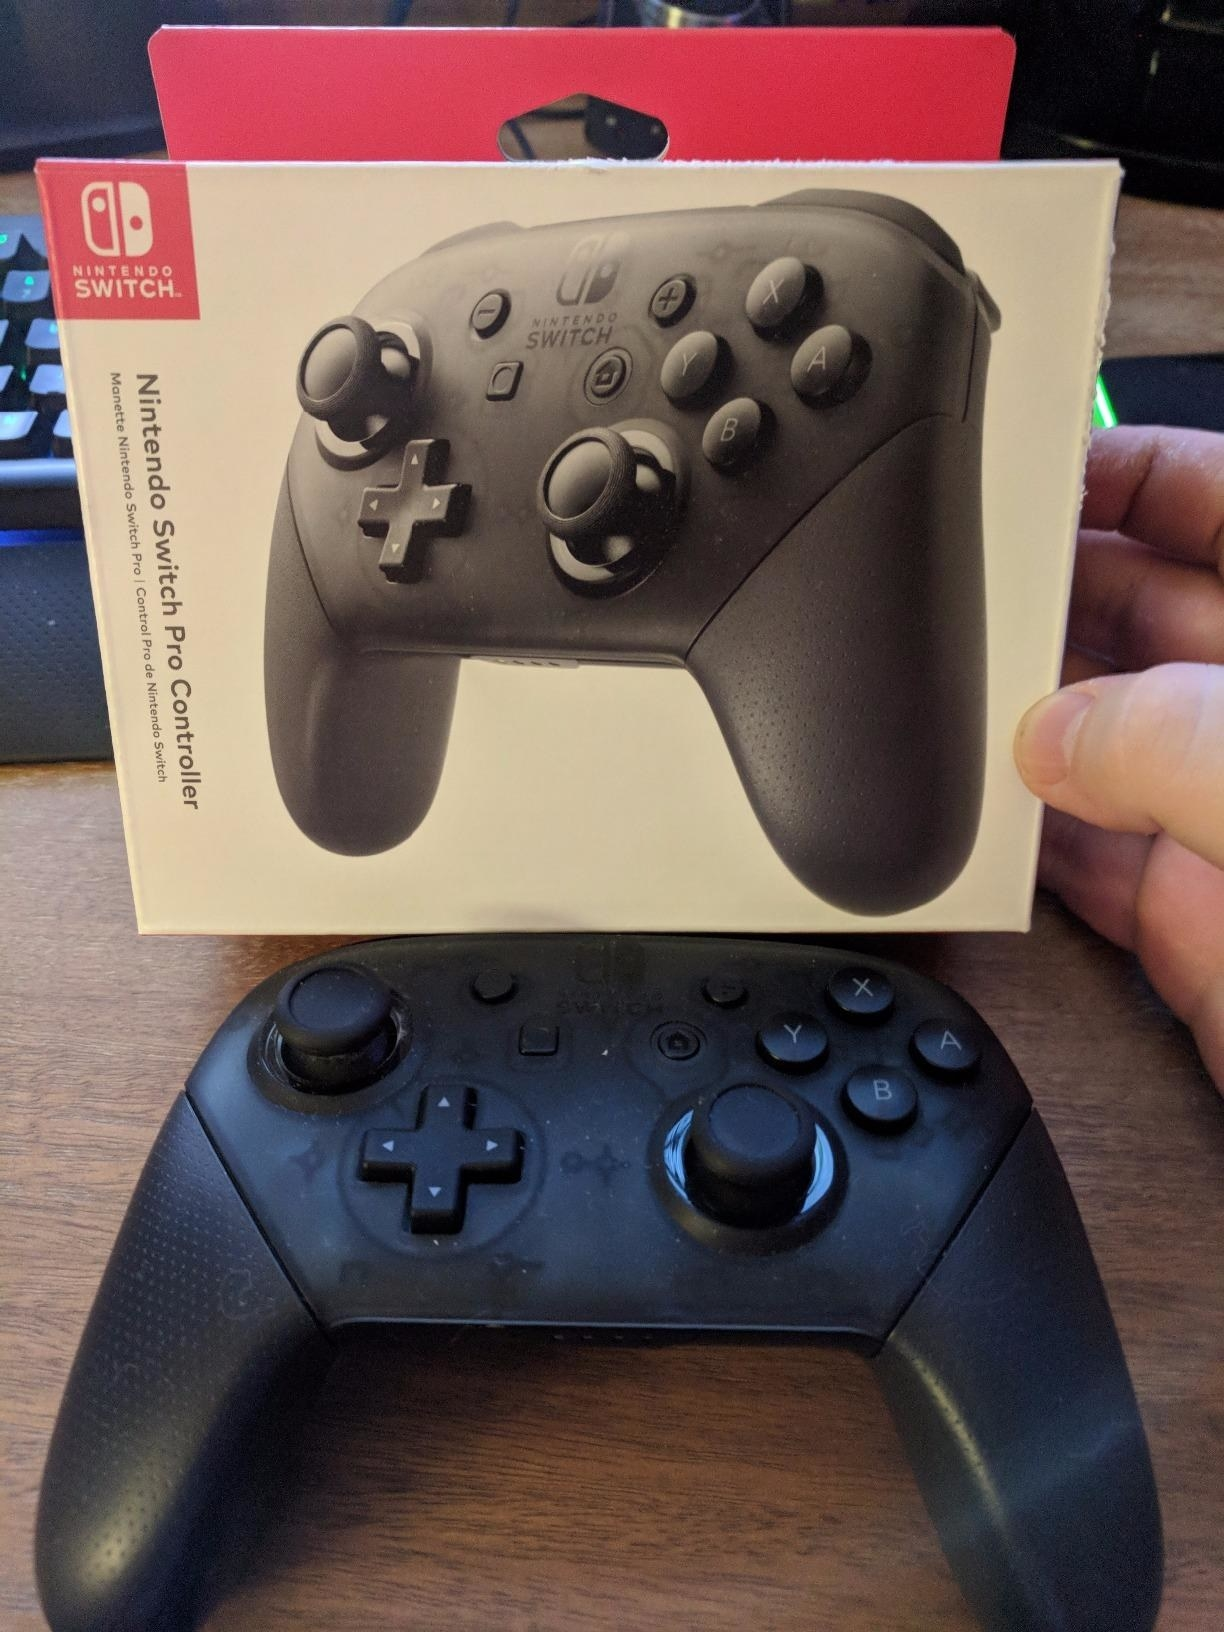 Amazon reviewer photo of black Nintendo Switch Pro Controller and packaging